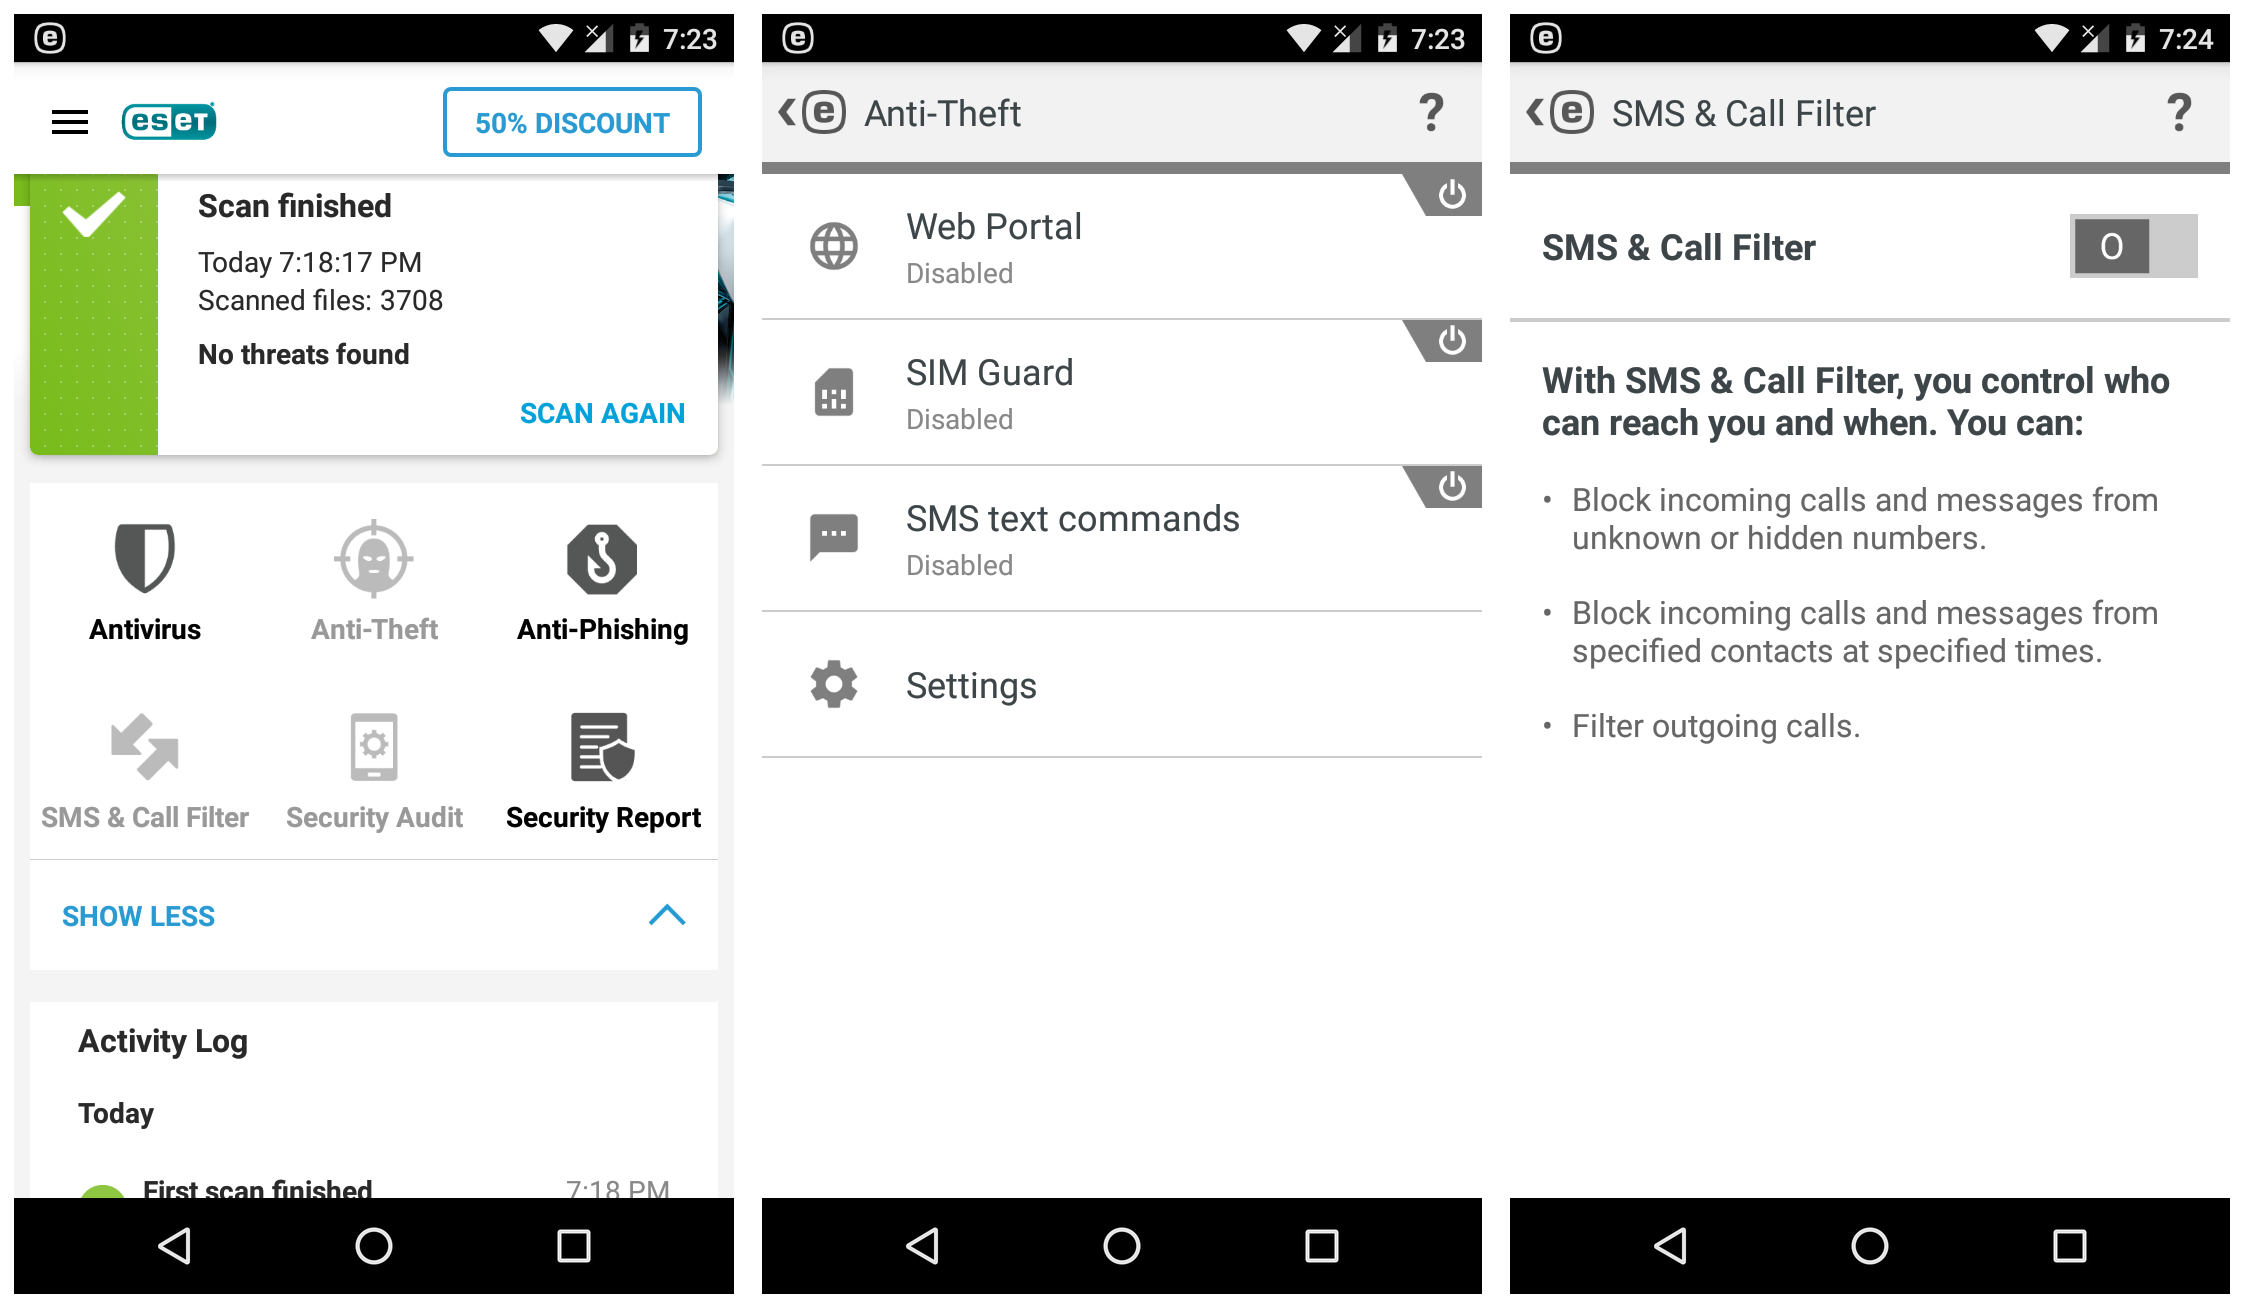 Eset Mobile Antivirus and Security